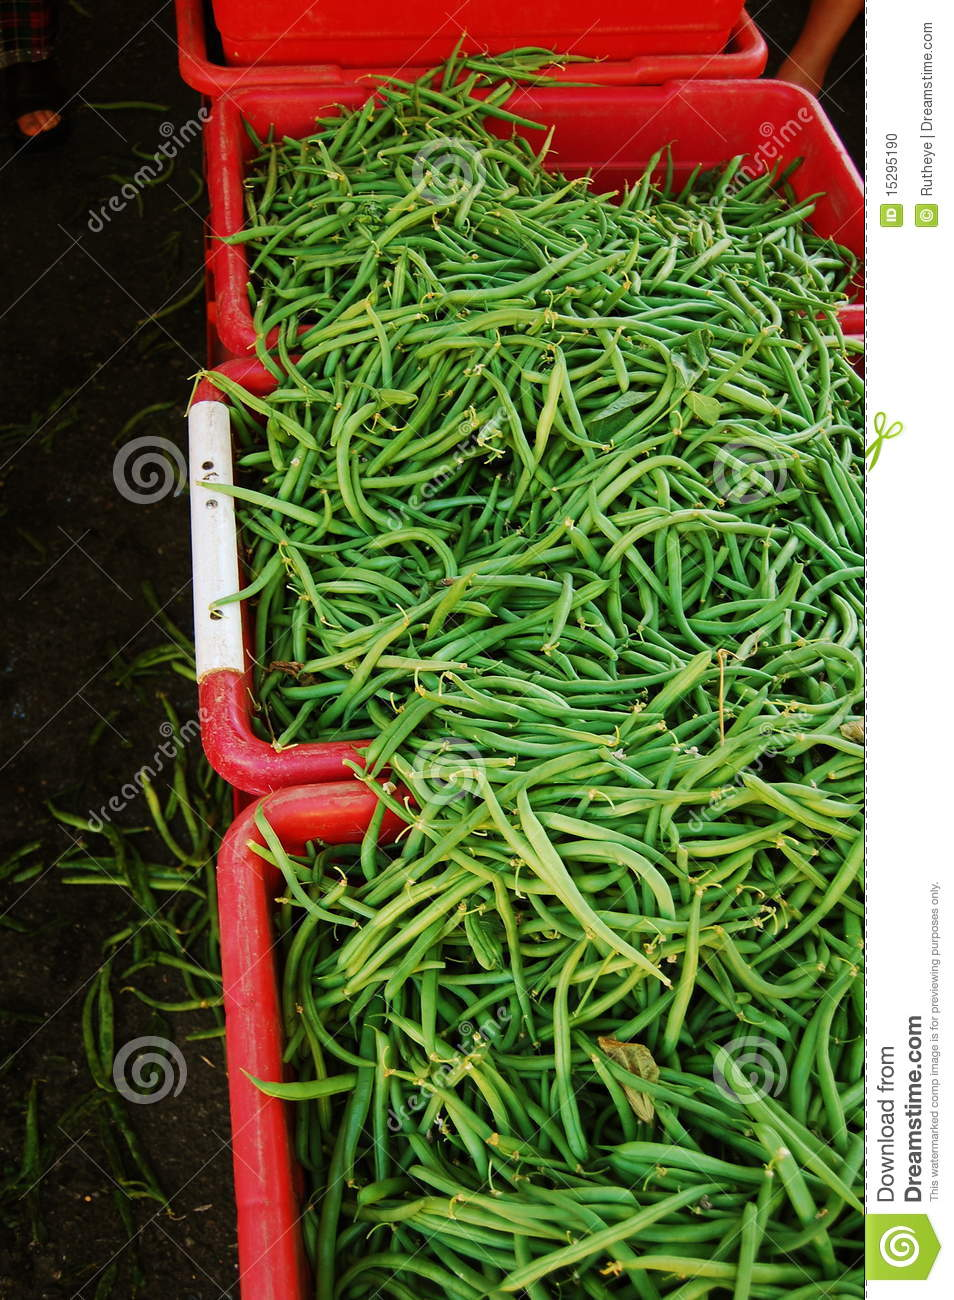 Green beans in red bins